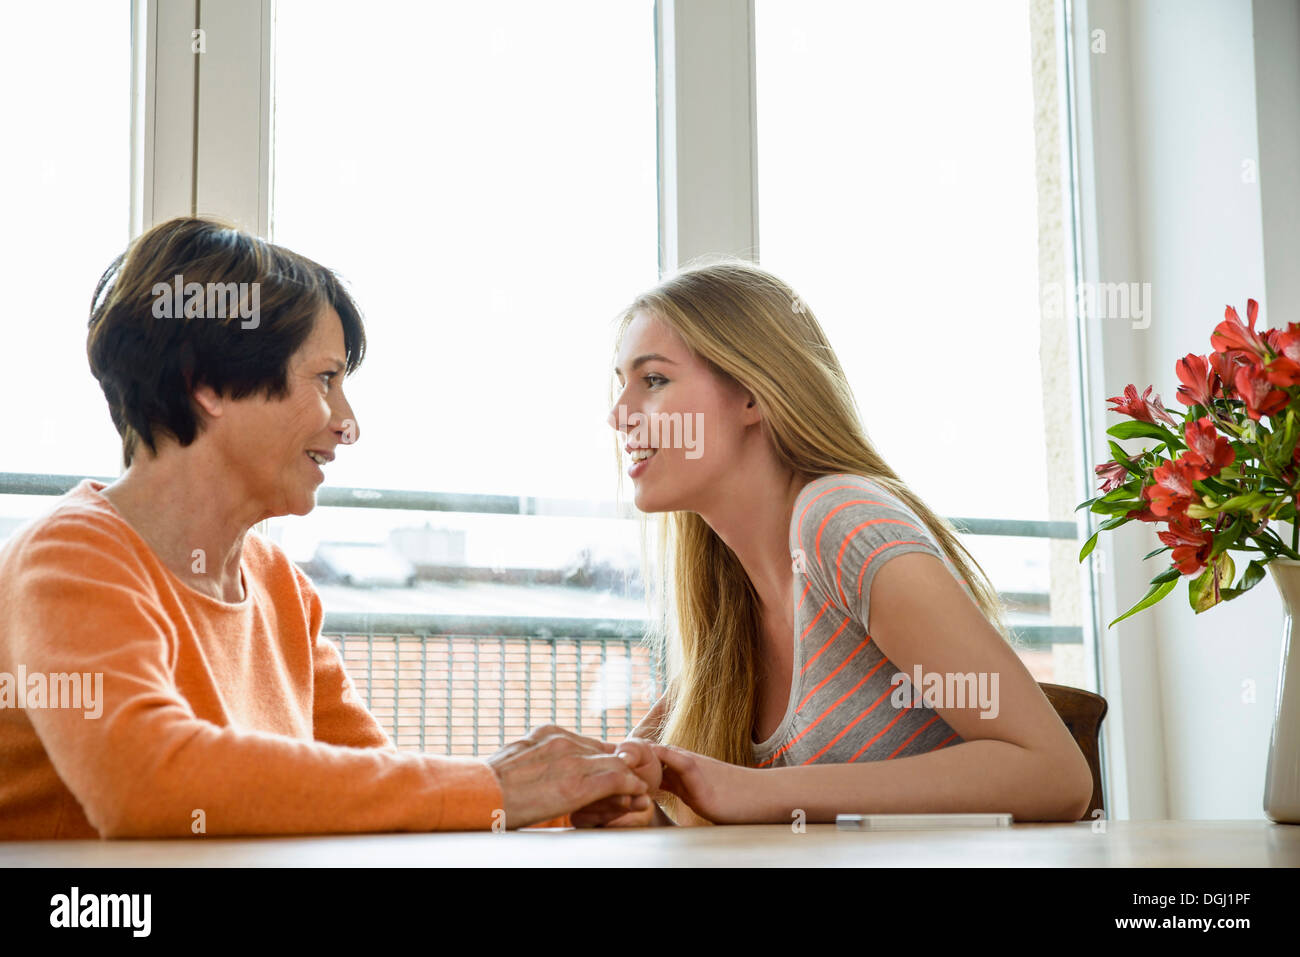 Mother and daughter talking face to face - Stock Image